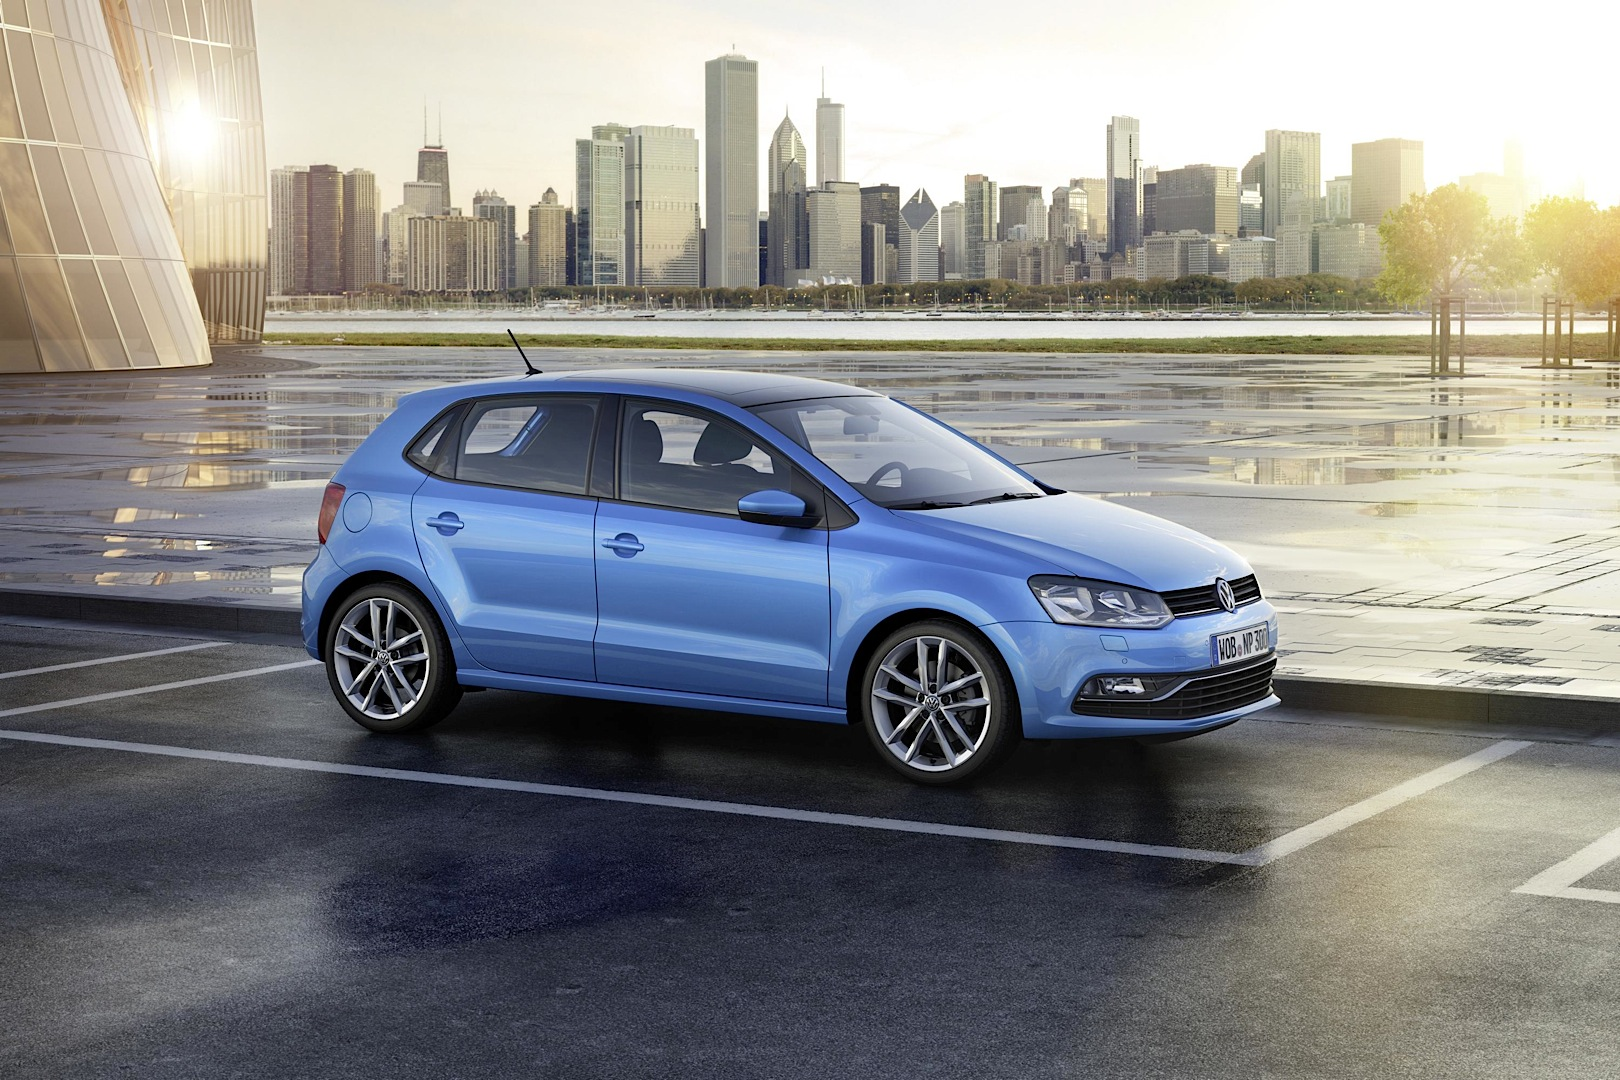 2014 Volkswagen Polo Facelift Exterior Changes Autoevolution